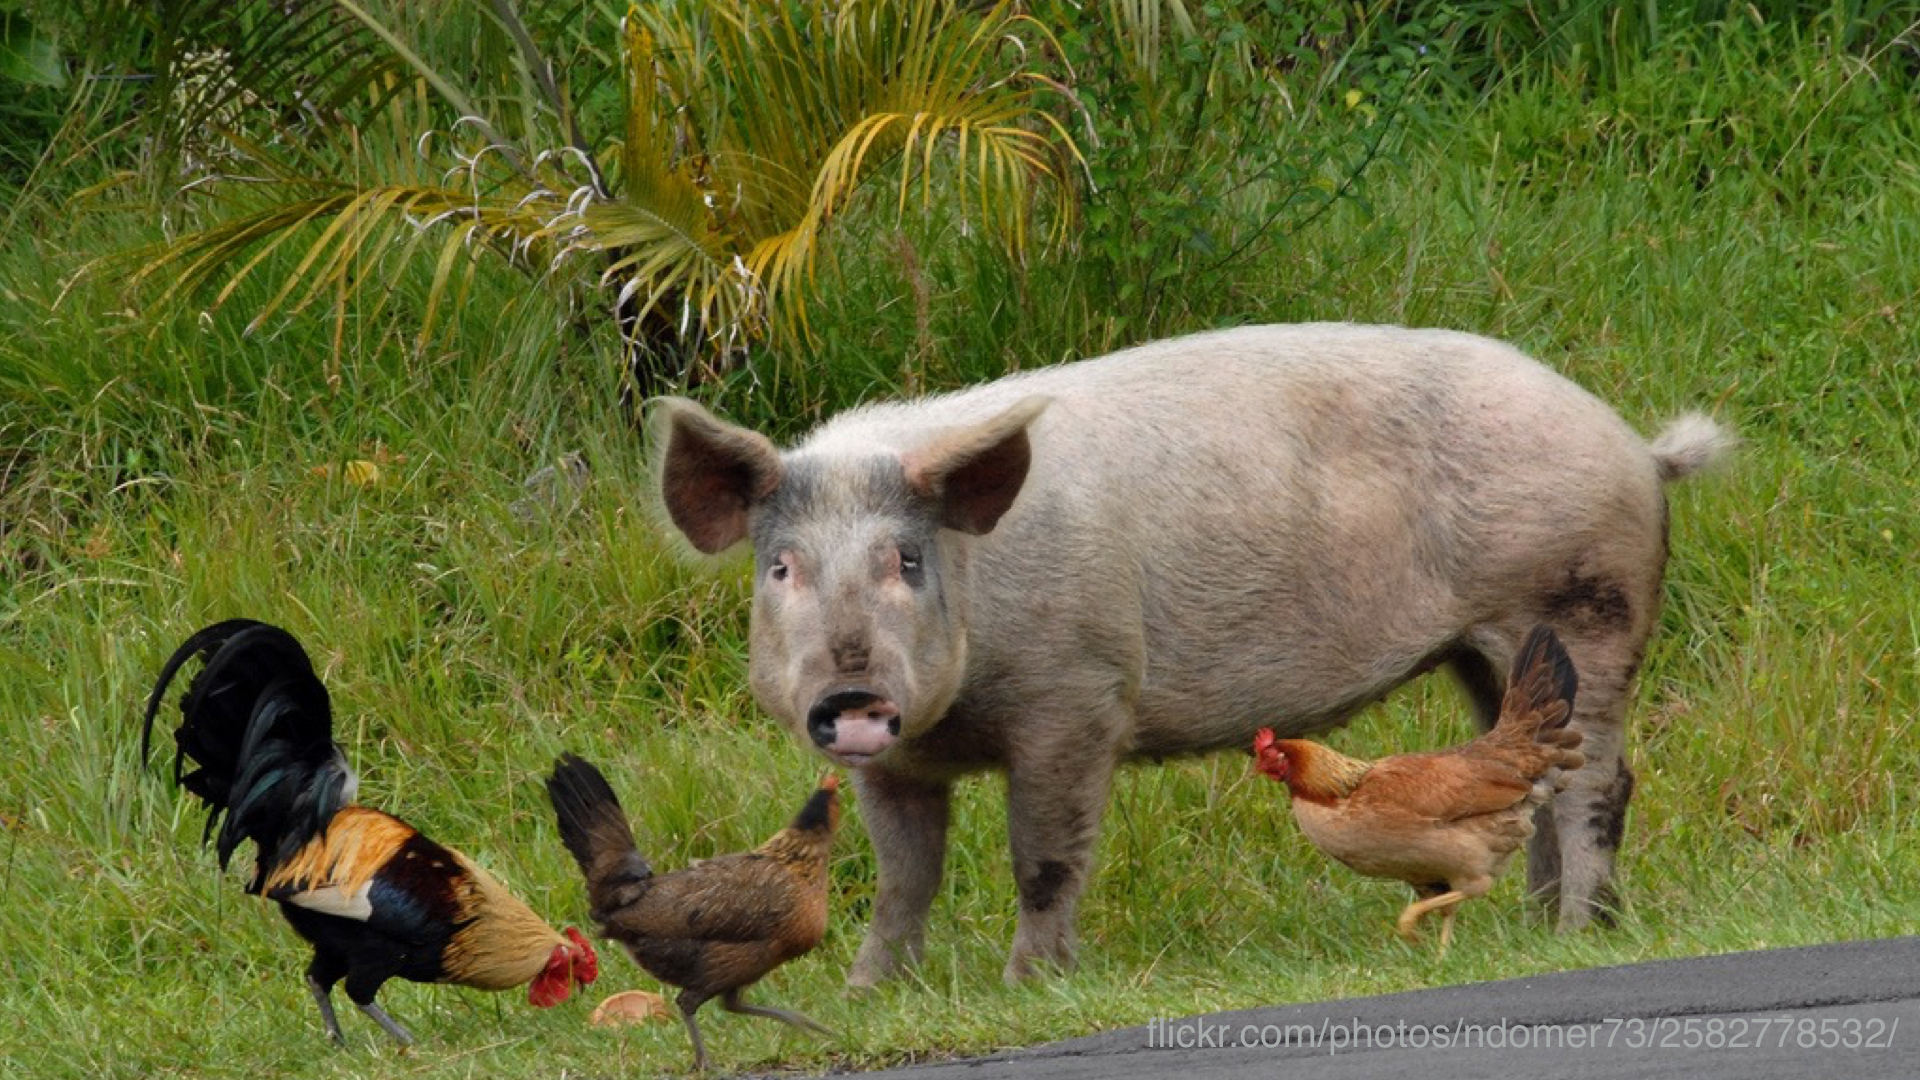 A photo of pigs and chickens